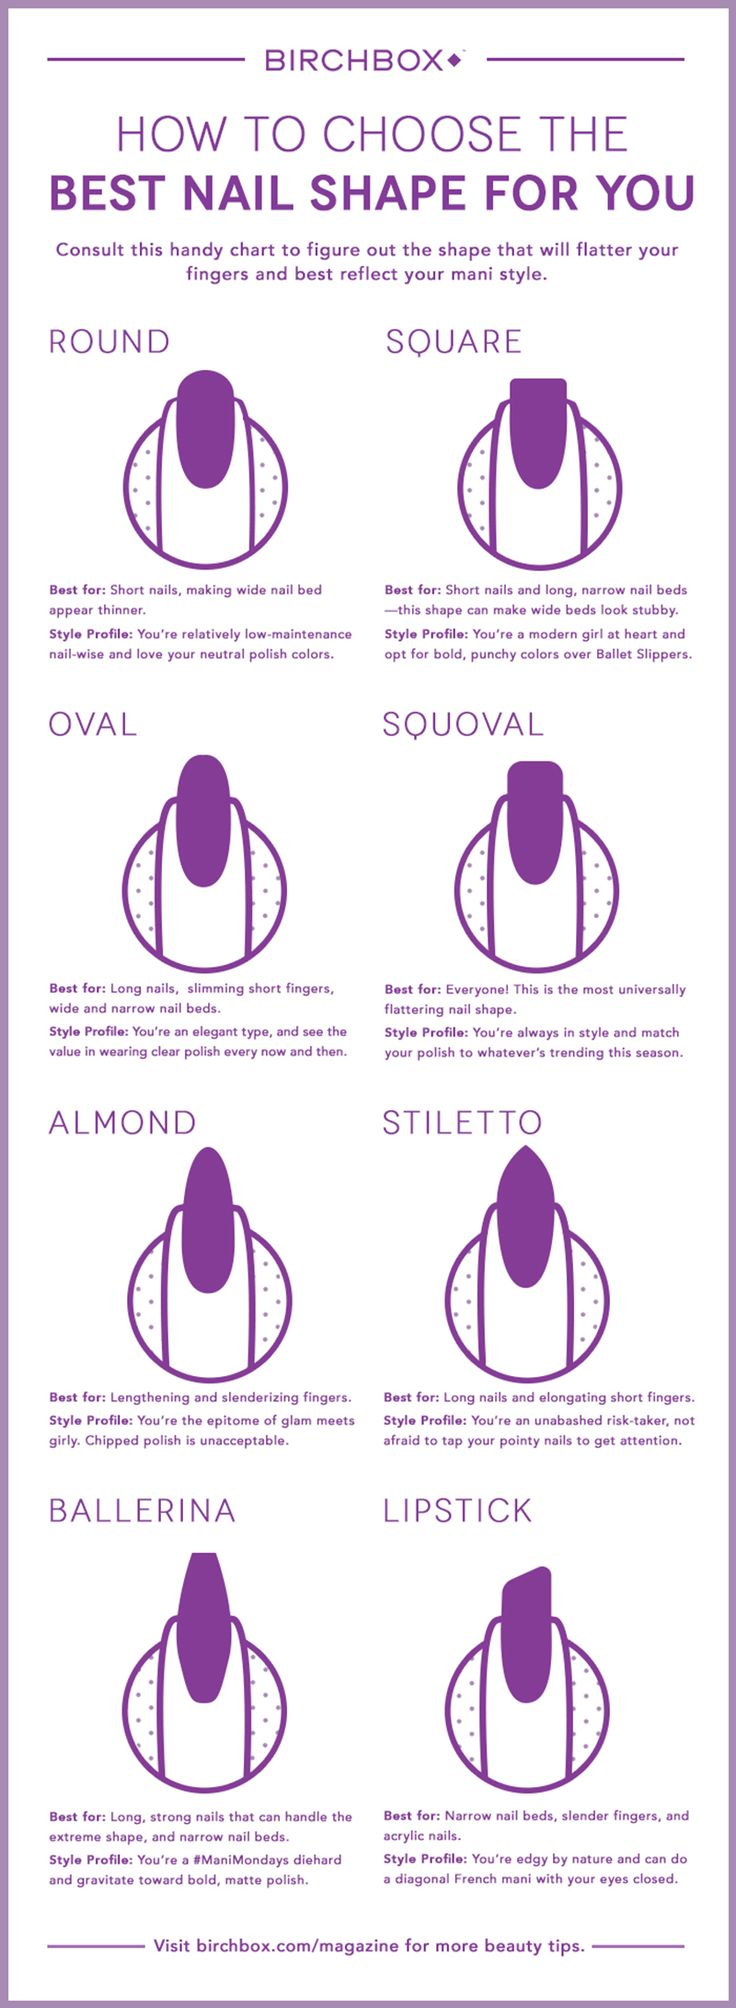 Birchbox Nail Shape Guide | Beauty | The Elgin Avenue Blog